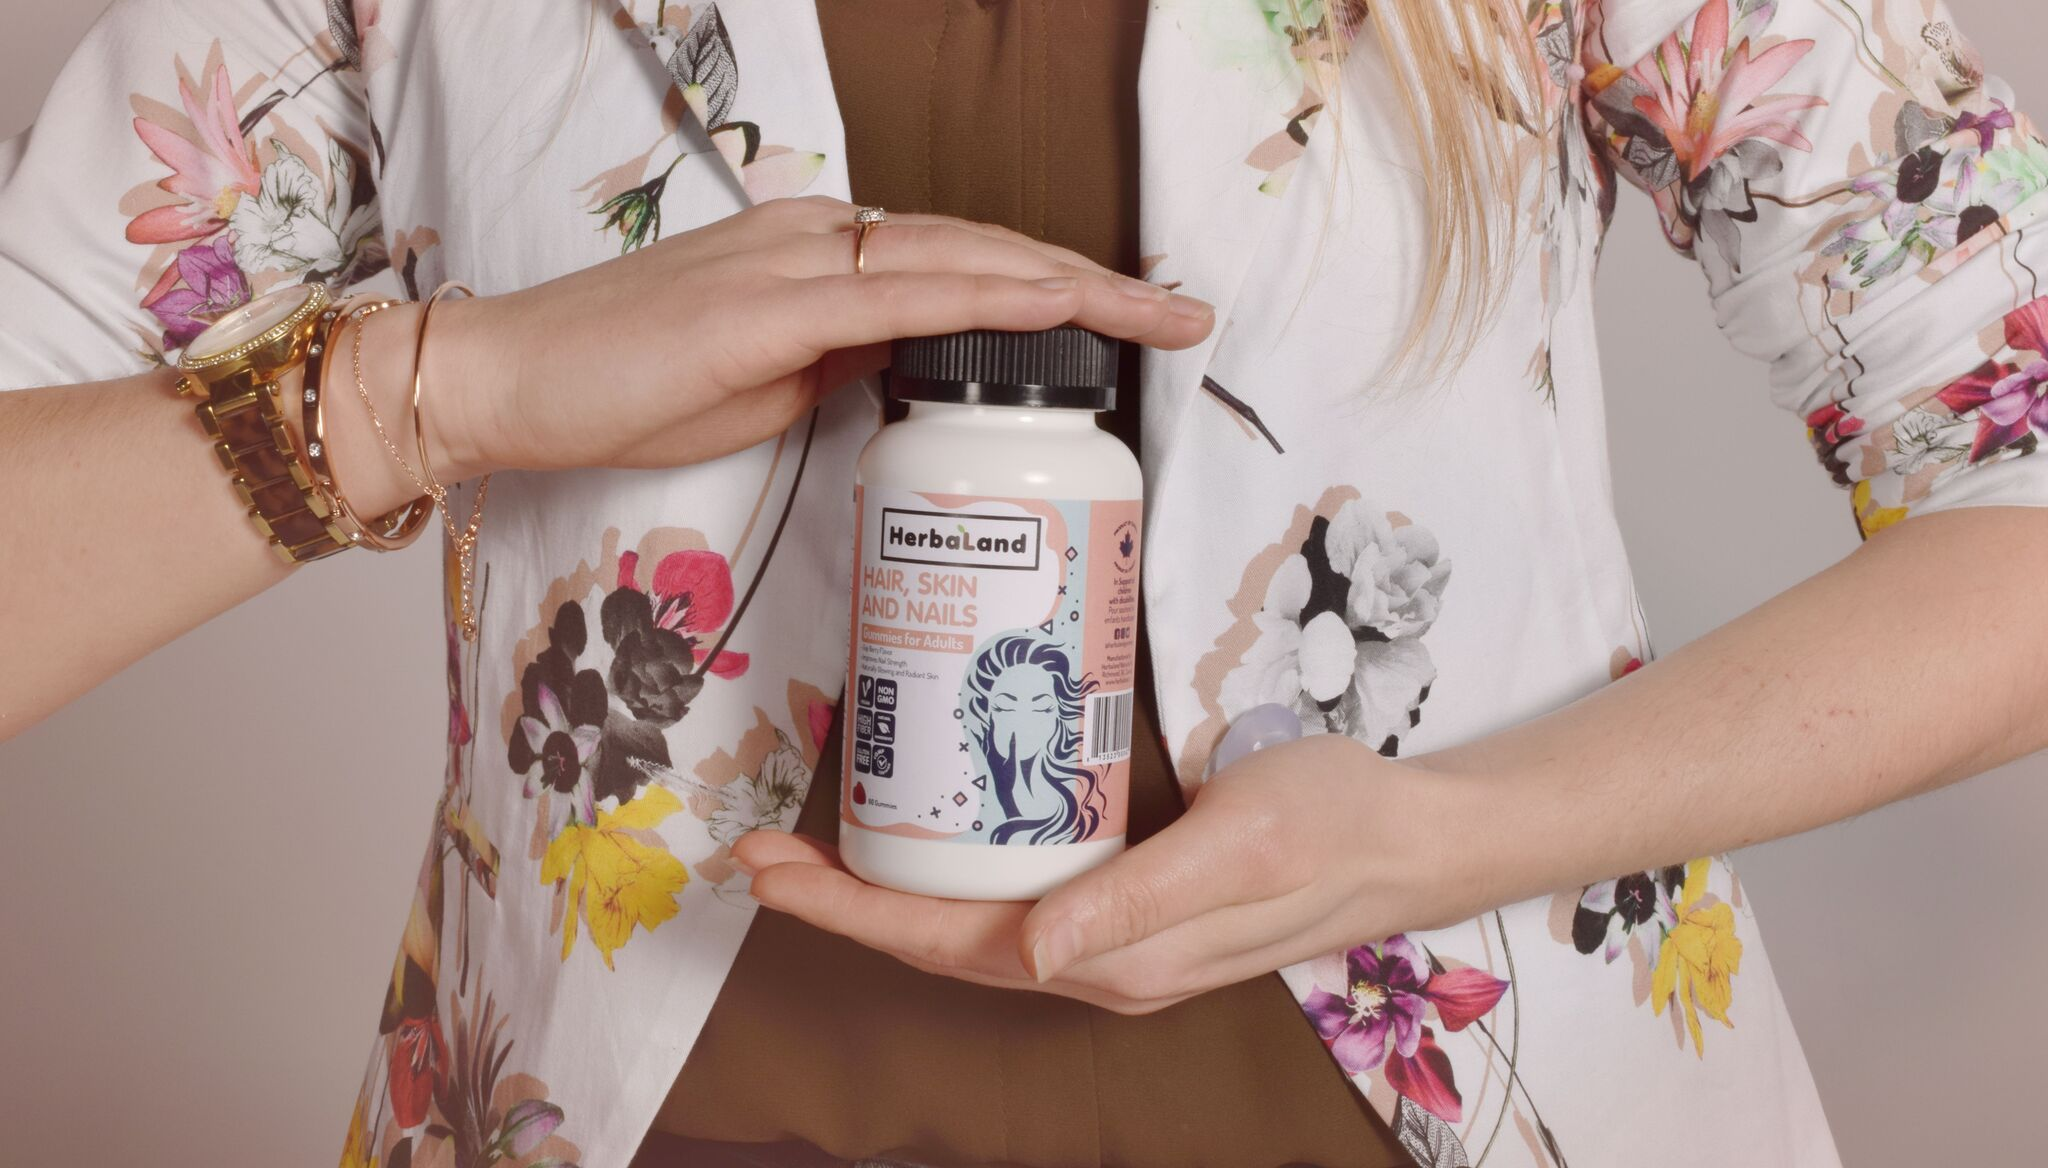 Herbaland makes gummy vitamins for the whole family. Photo credit: Herbaland